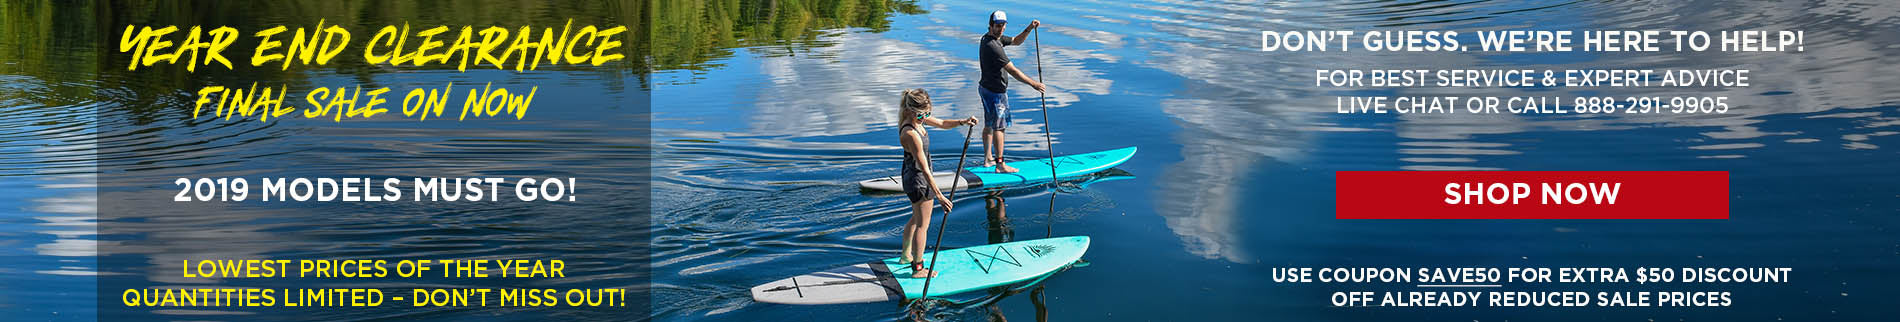 All Terrain Paddle Boards - Clearance Sale